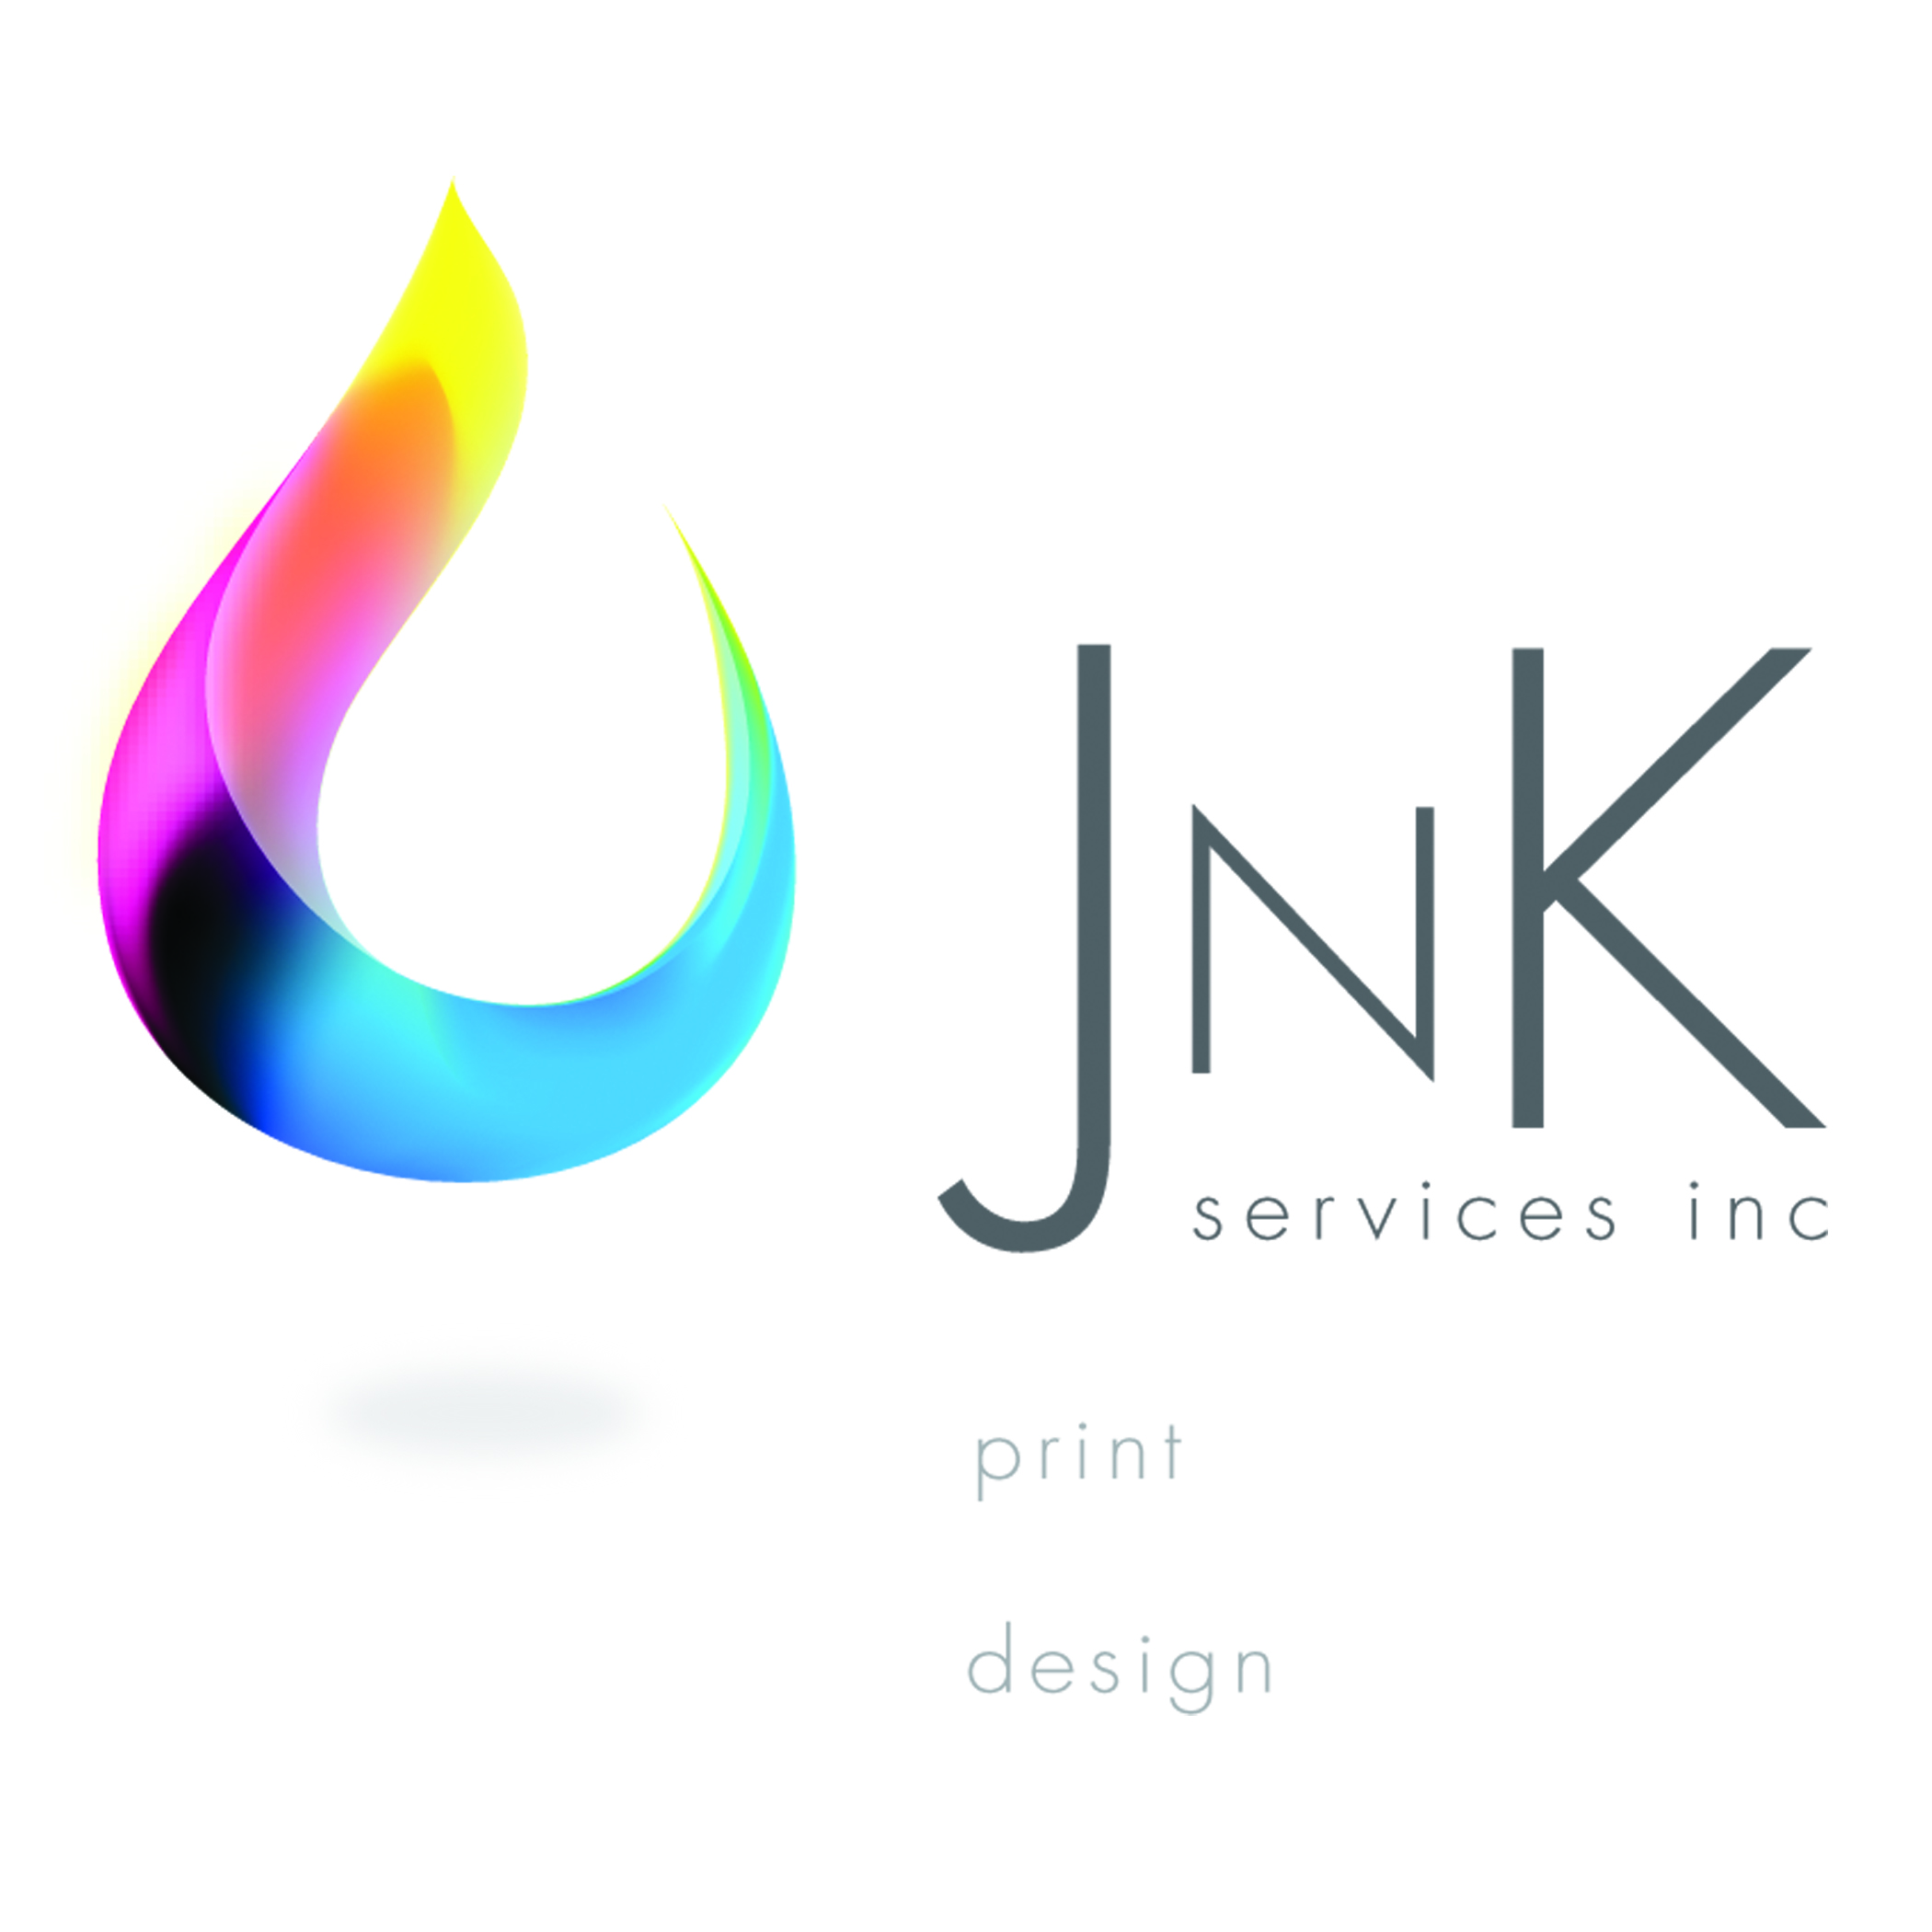 Branding And Rebranding Jnk Services: branding and logo design companies